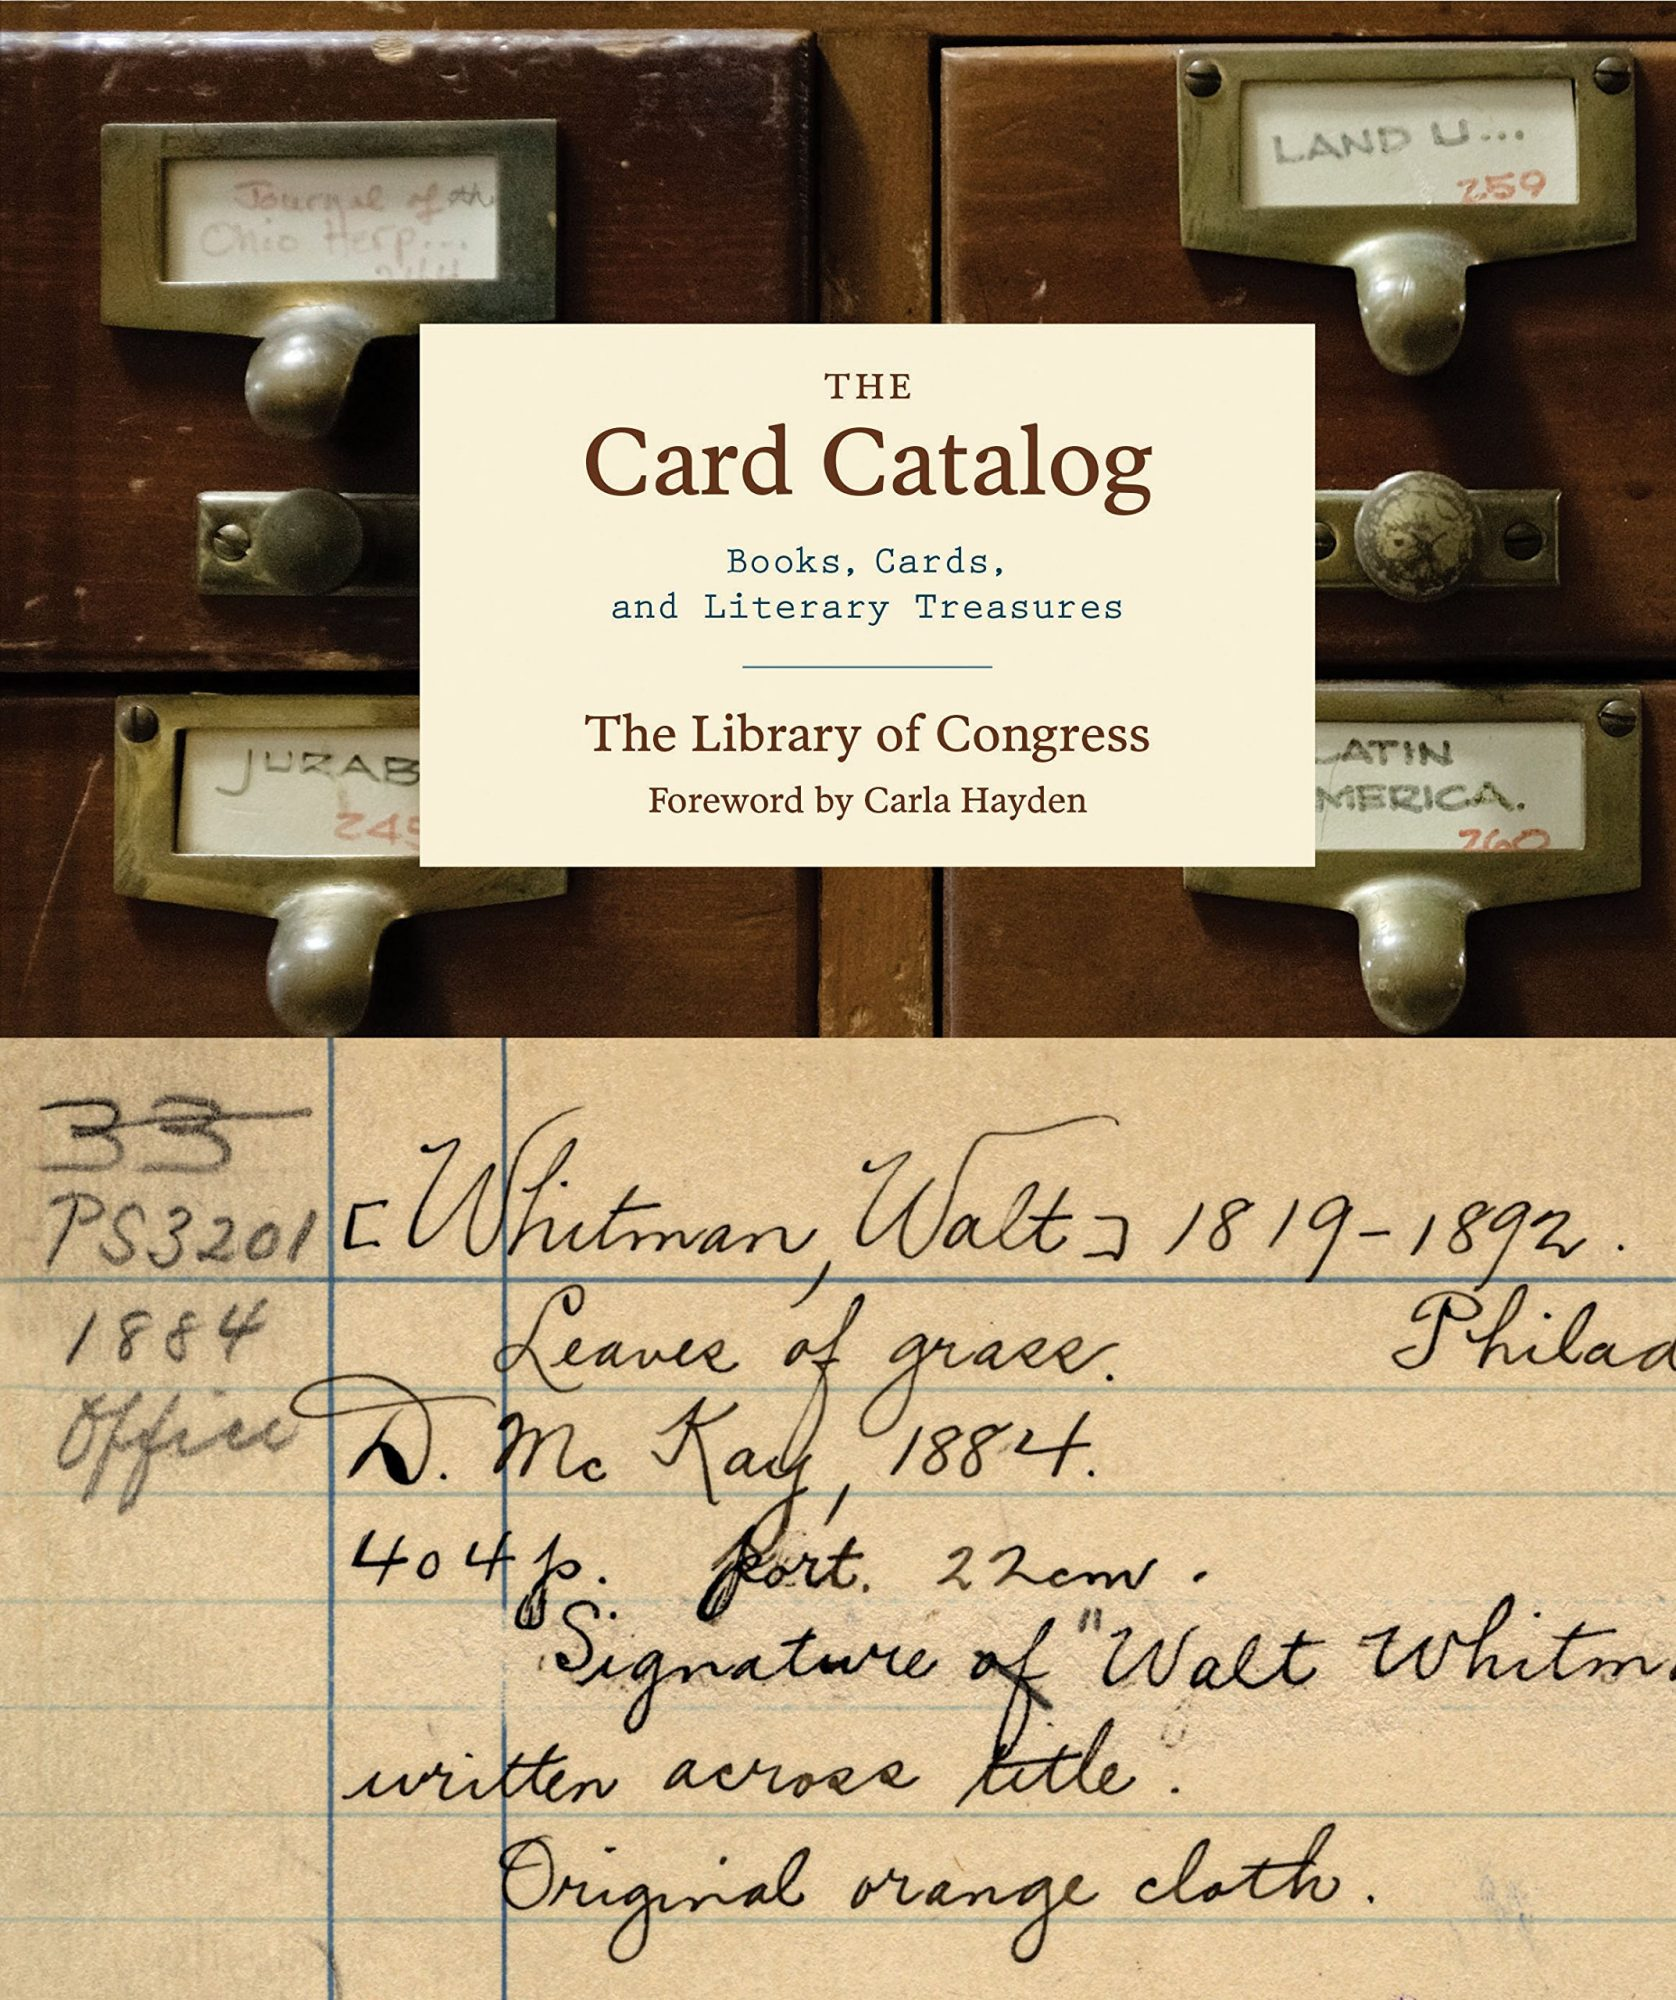 The Card Catalog: Books, Cards, and Literary Treasures by the Library of Congress